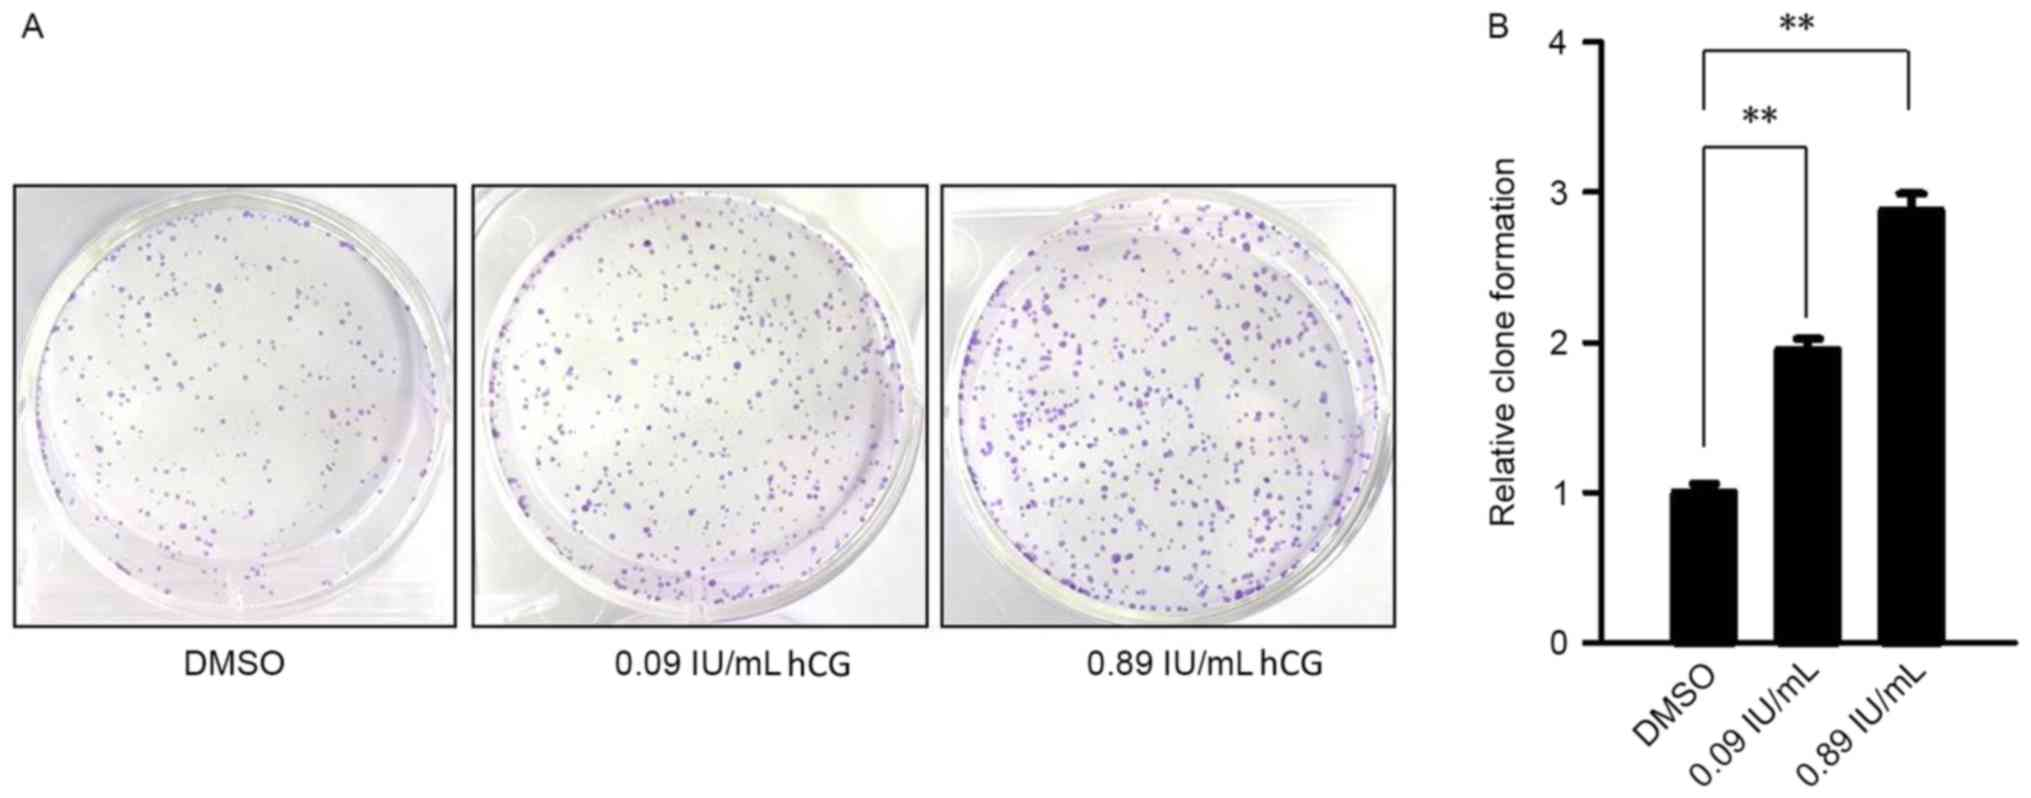 Human chorionic gonadotropin promotes cell proliferation